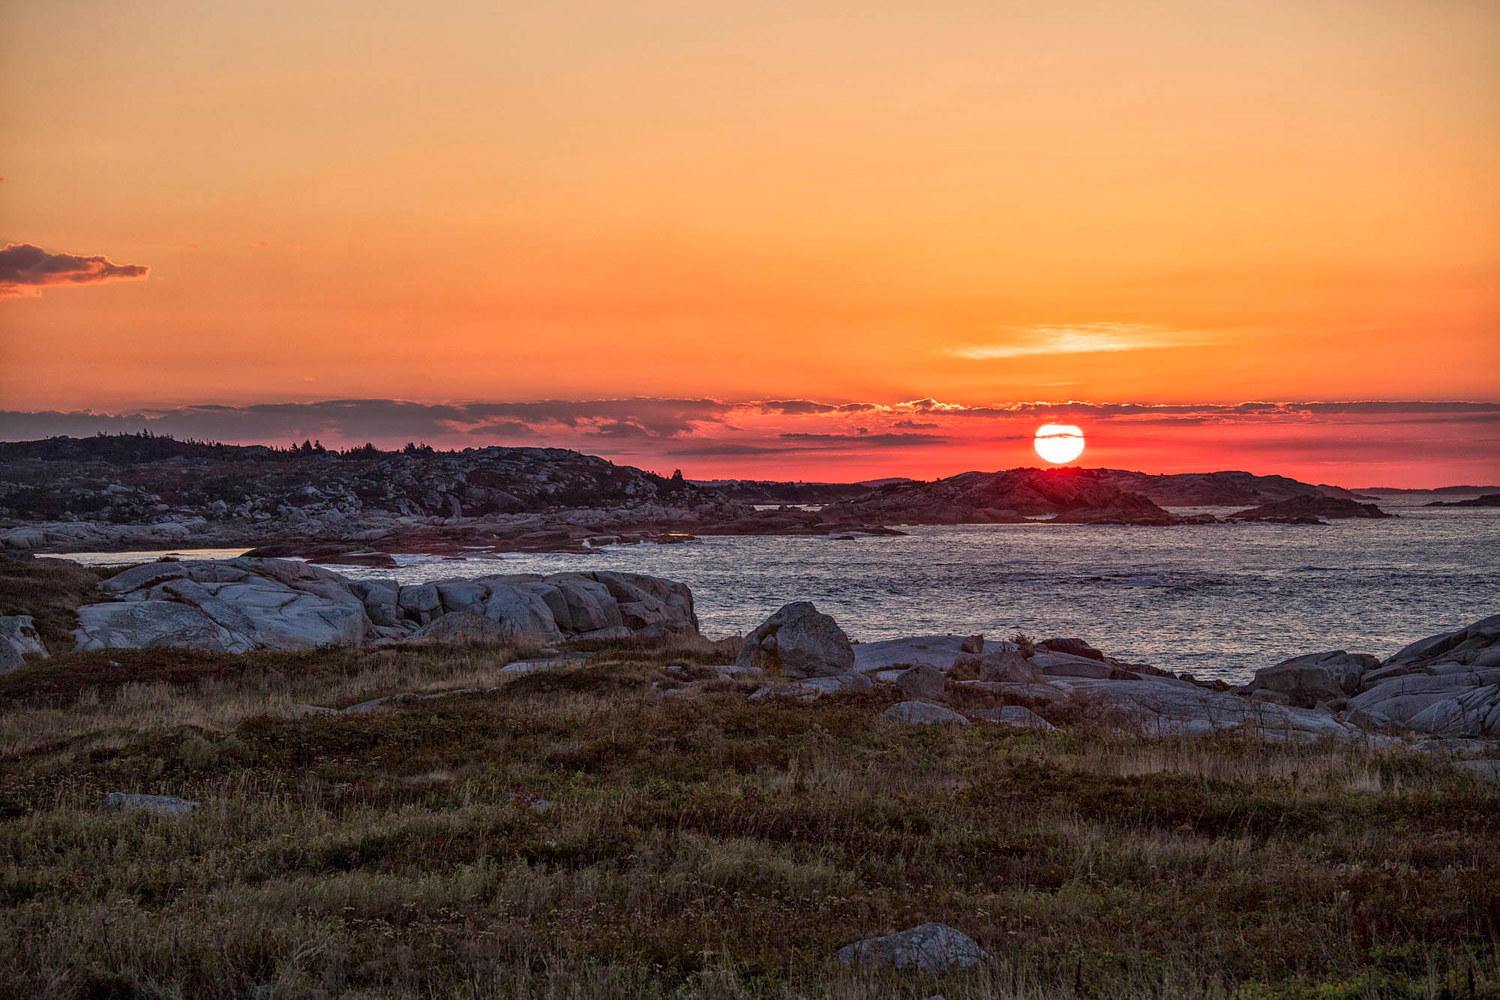 Sunrise at Peggys Cove by William Kent